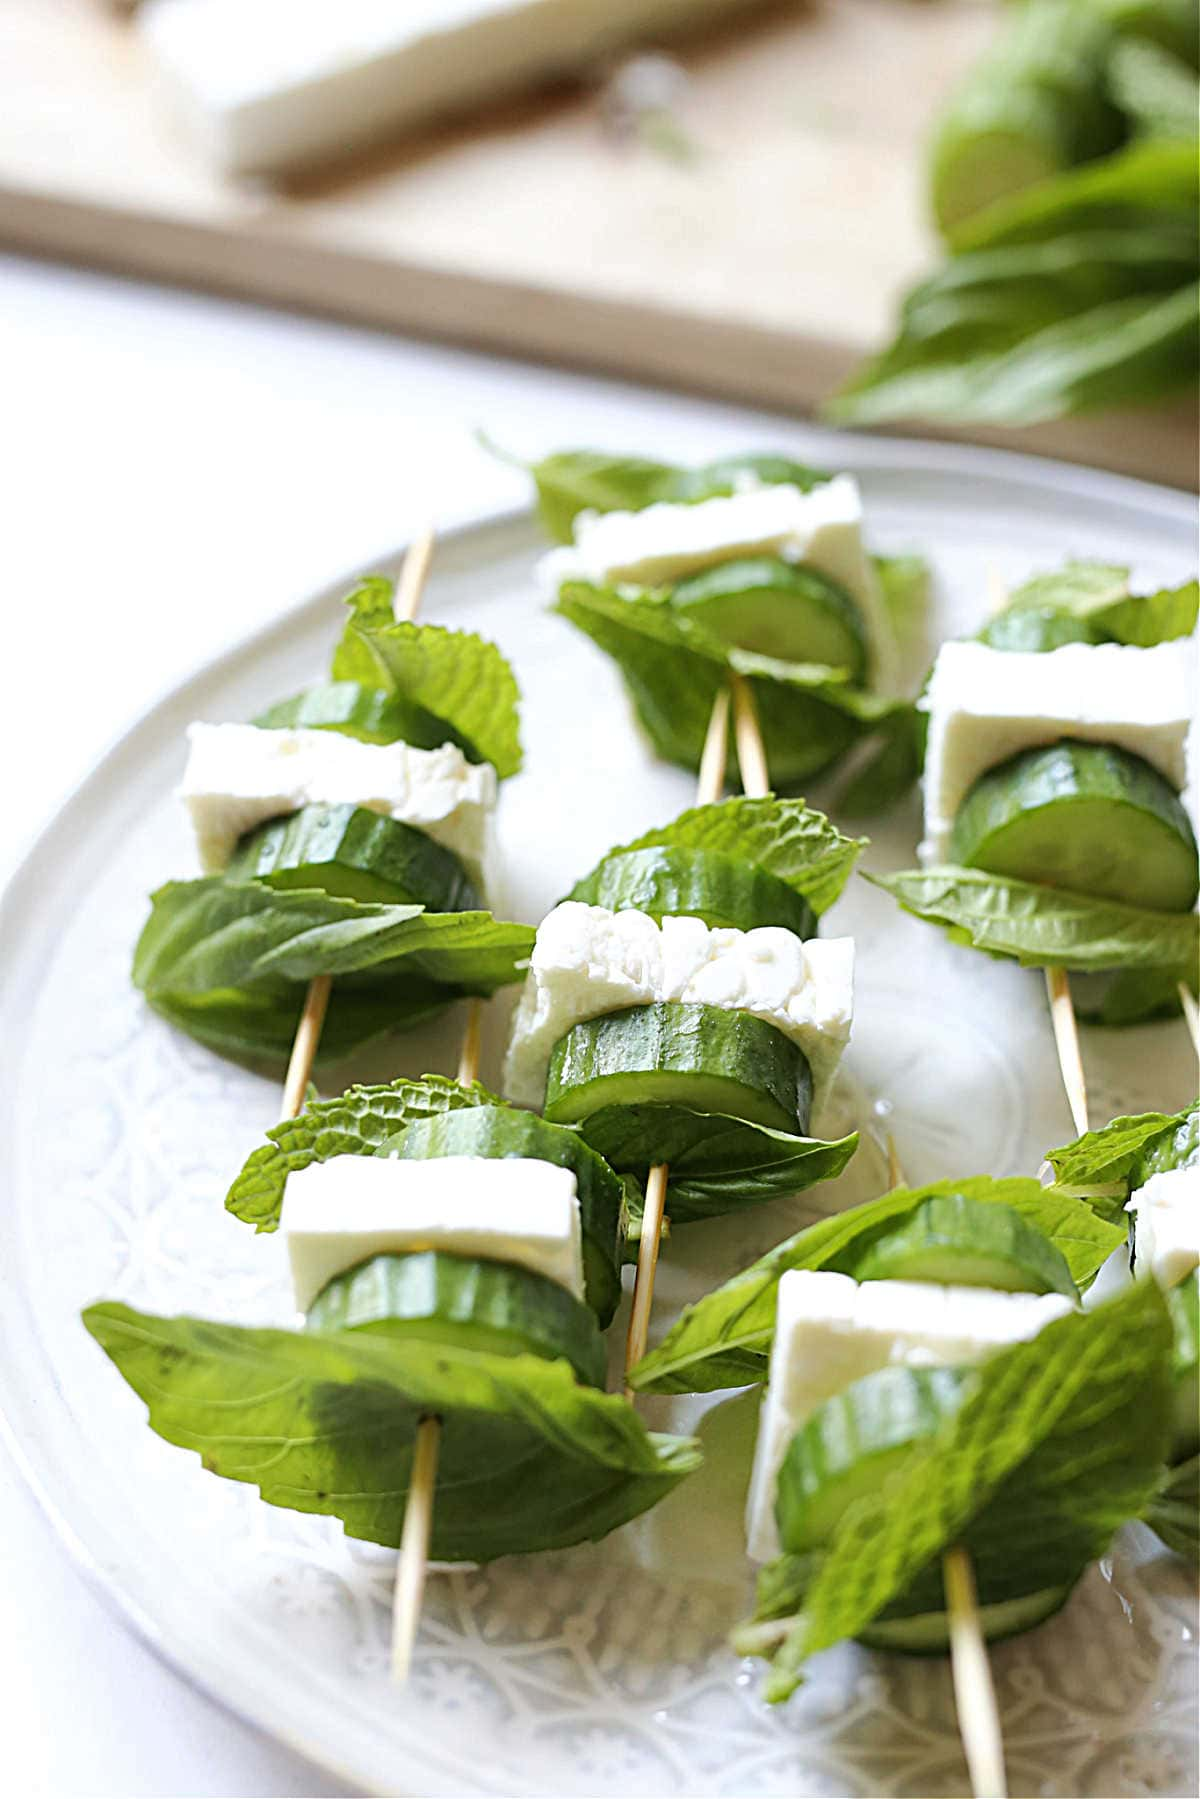 cucumber feta and herbs on toothpicks served as an appetizer bites